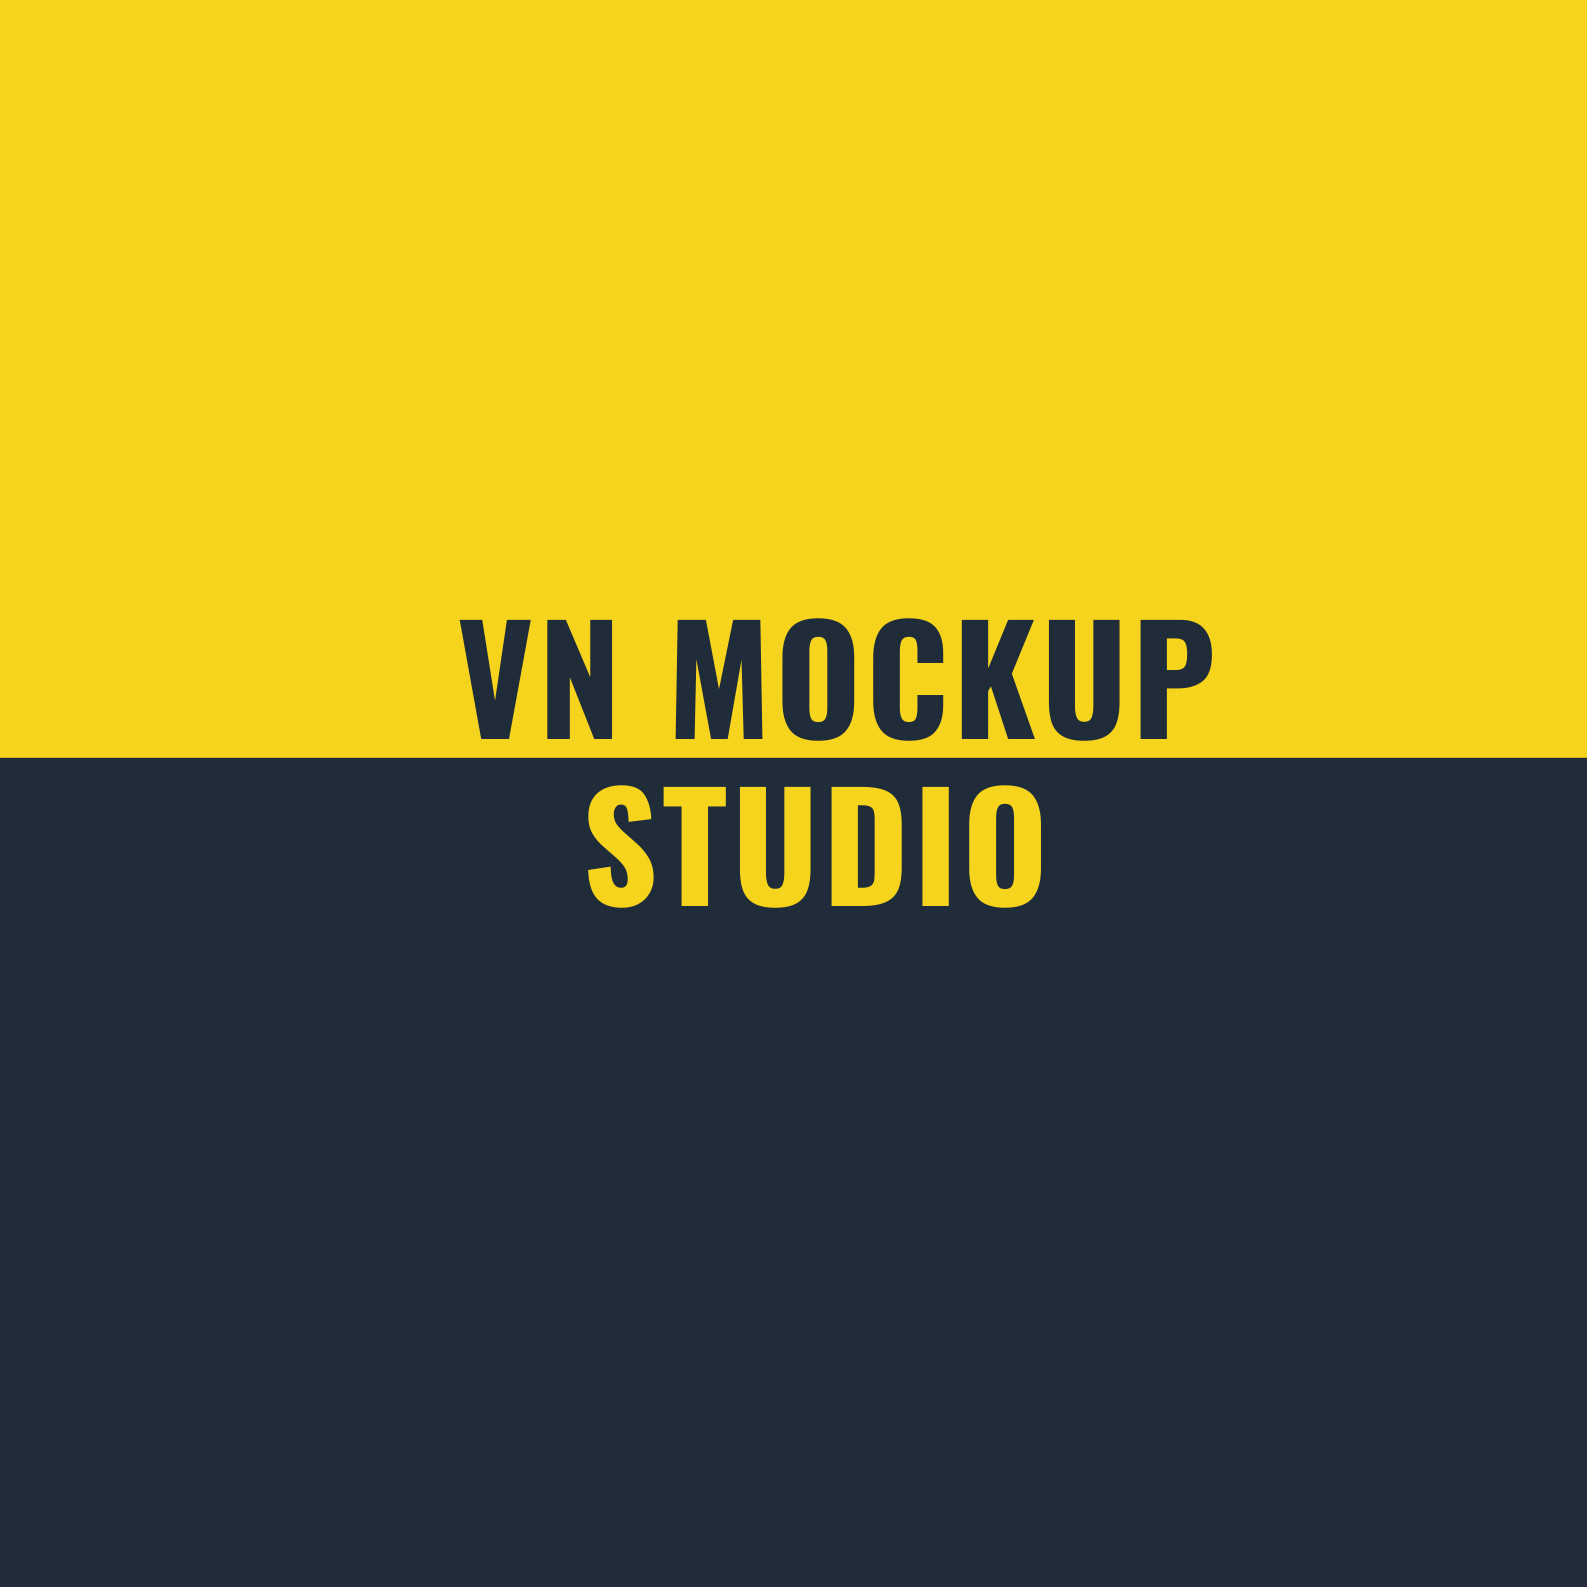 VNMockupStudio's profile picture